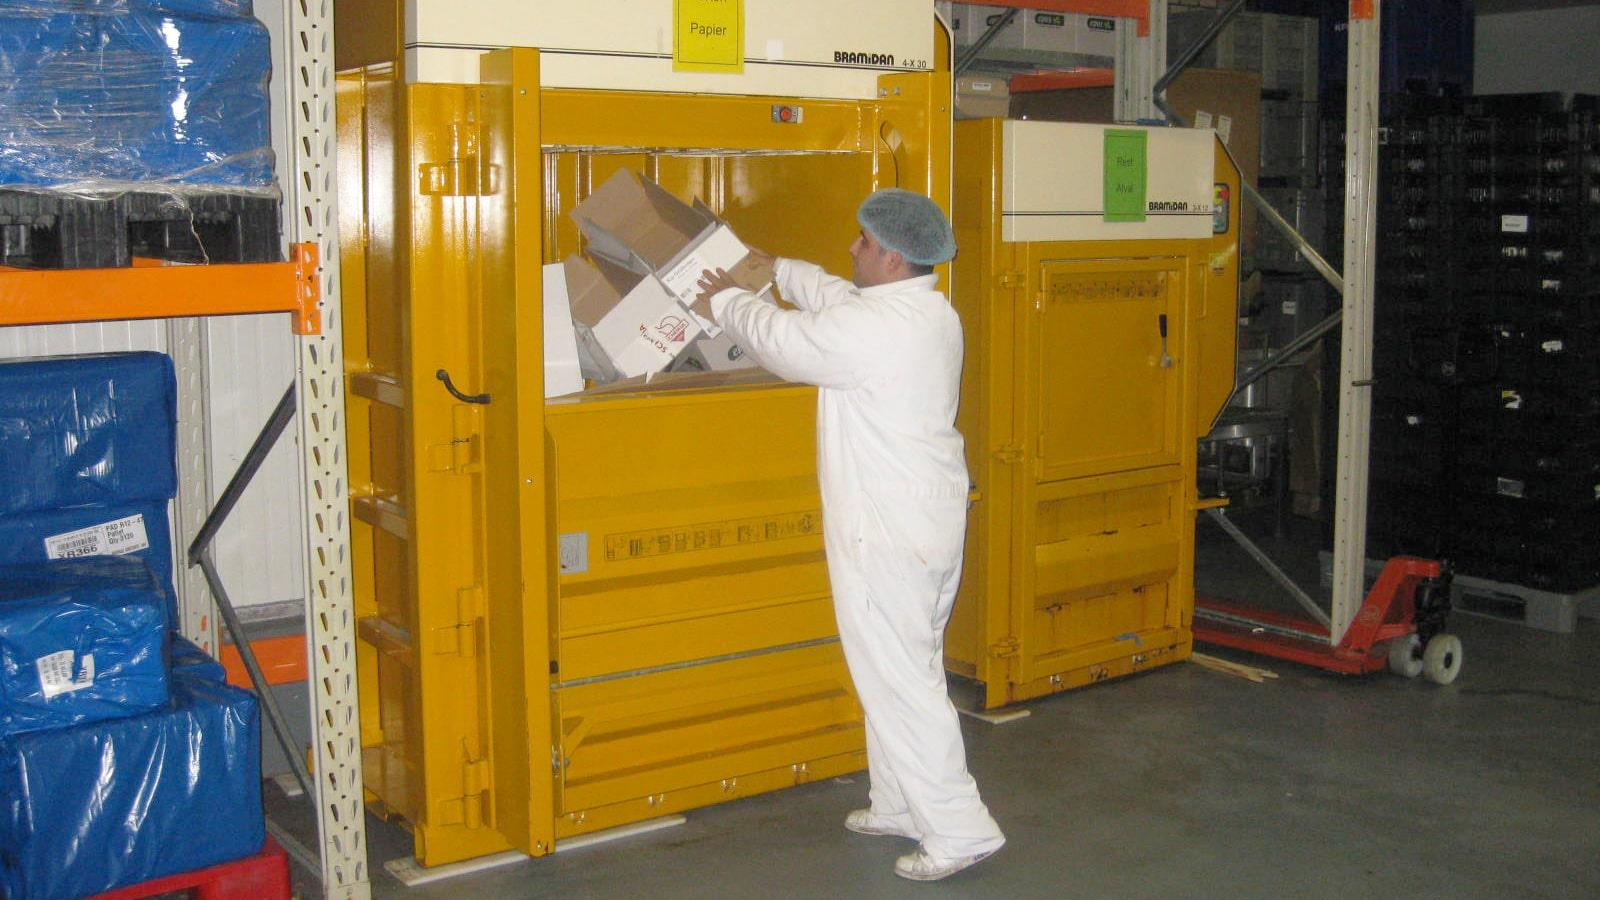 Man in white worksuit compacting cardboard in Bramidan baler